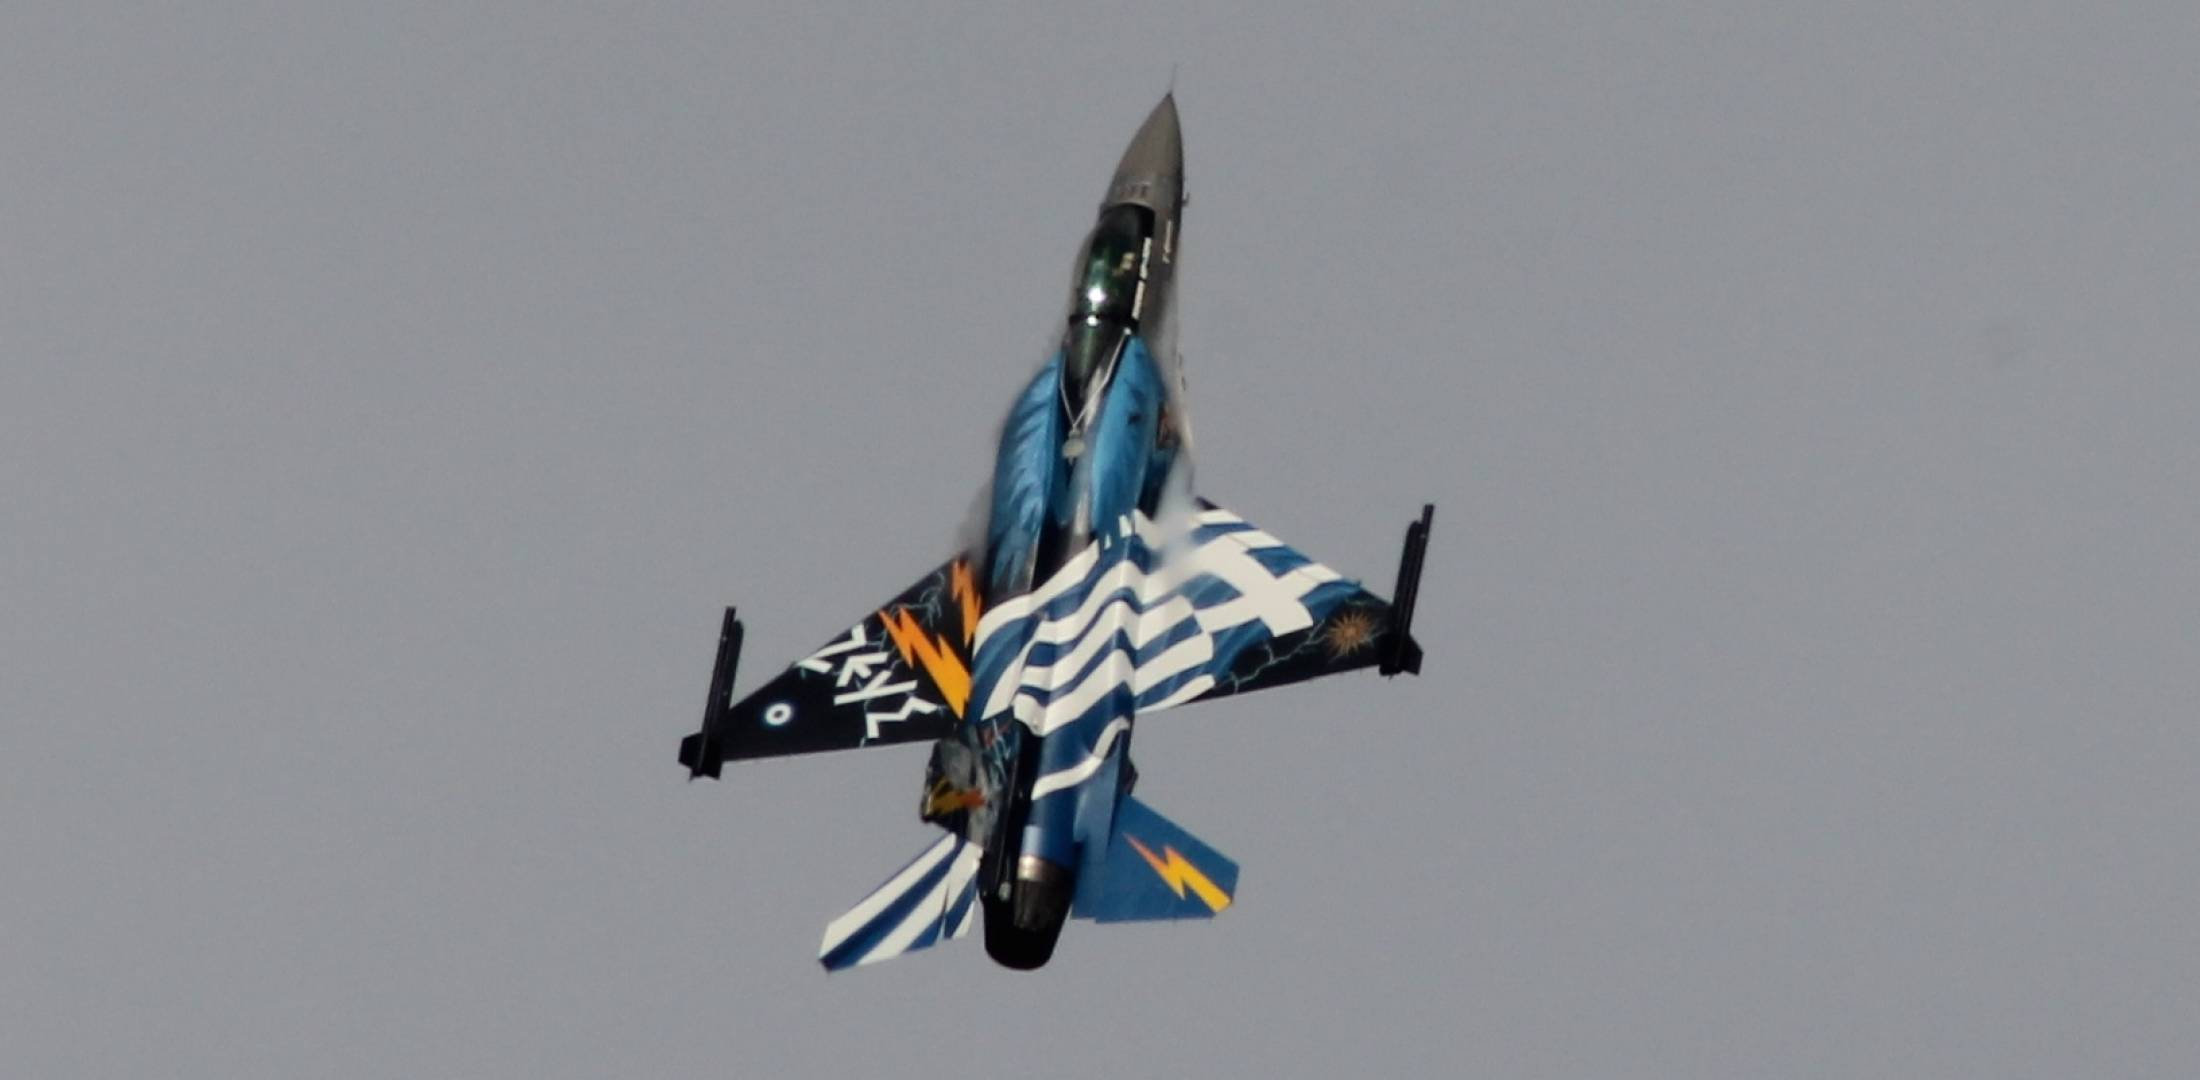 Hellenic Air Force F-16